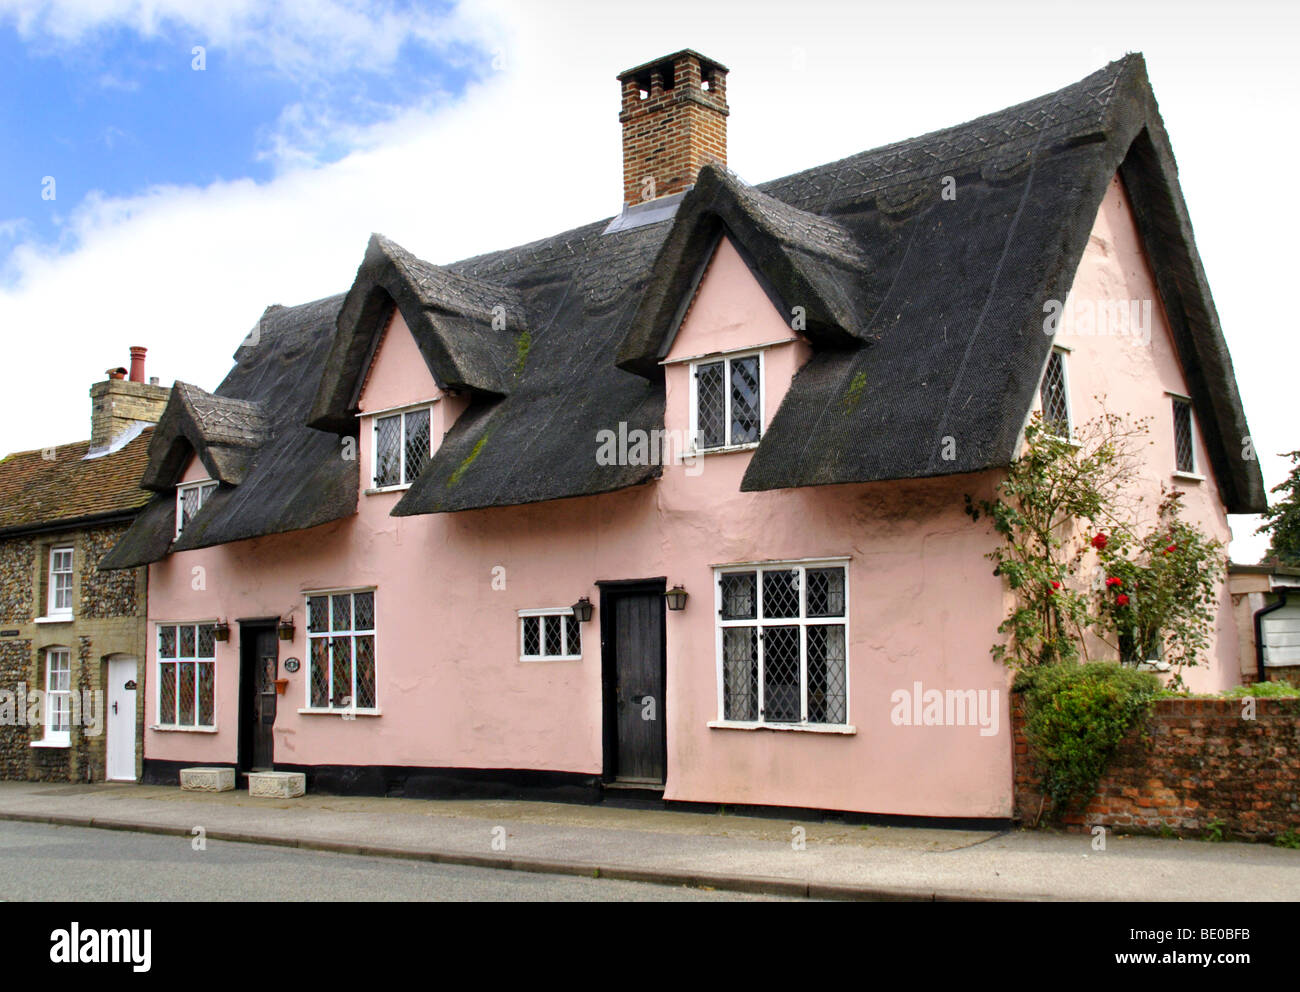 Thatched House in Lavenham, Suffolk, England - Stock Image